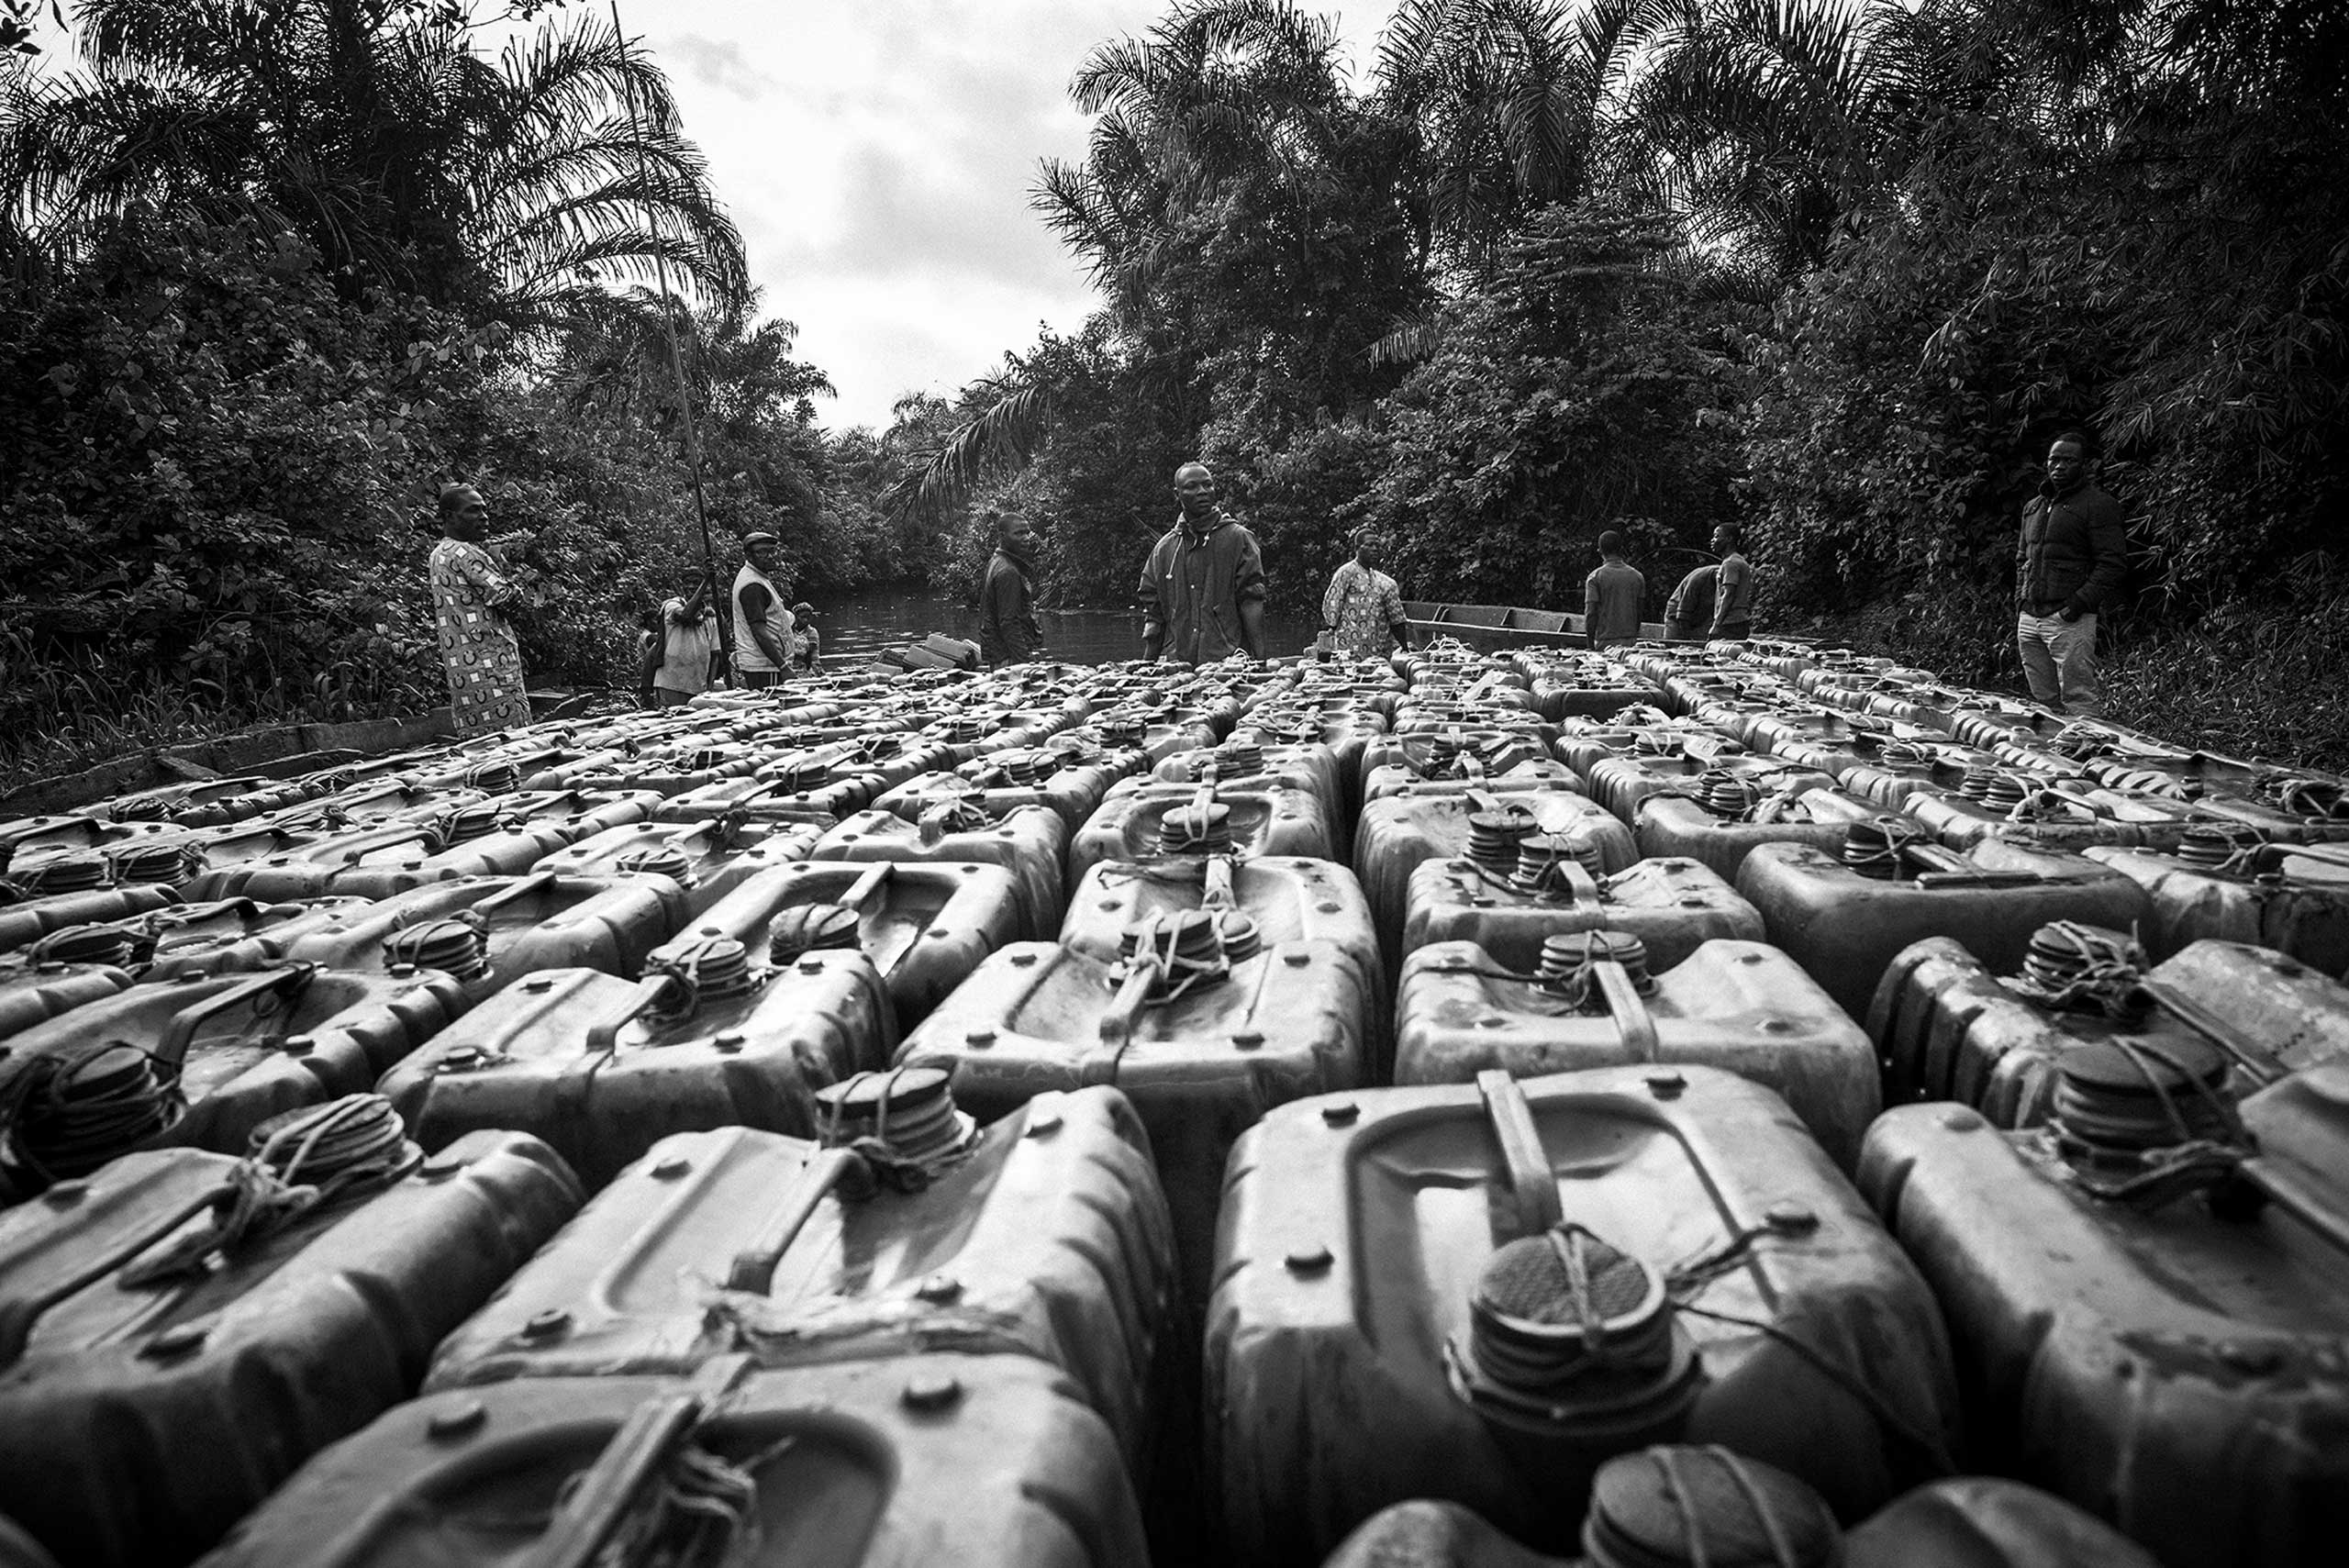 Ifagni, in the region called Plateau, is the center of the illegal trafficking of petrol between Nigeria and Benin. That's one of the shortest and safest waterways to bypass the border controls, to unload thousands of drums.